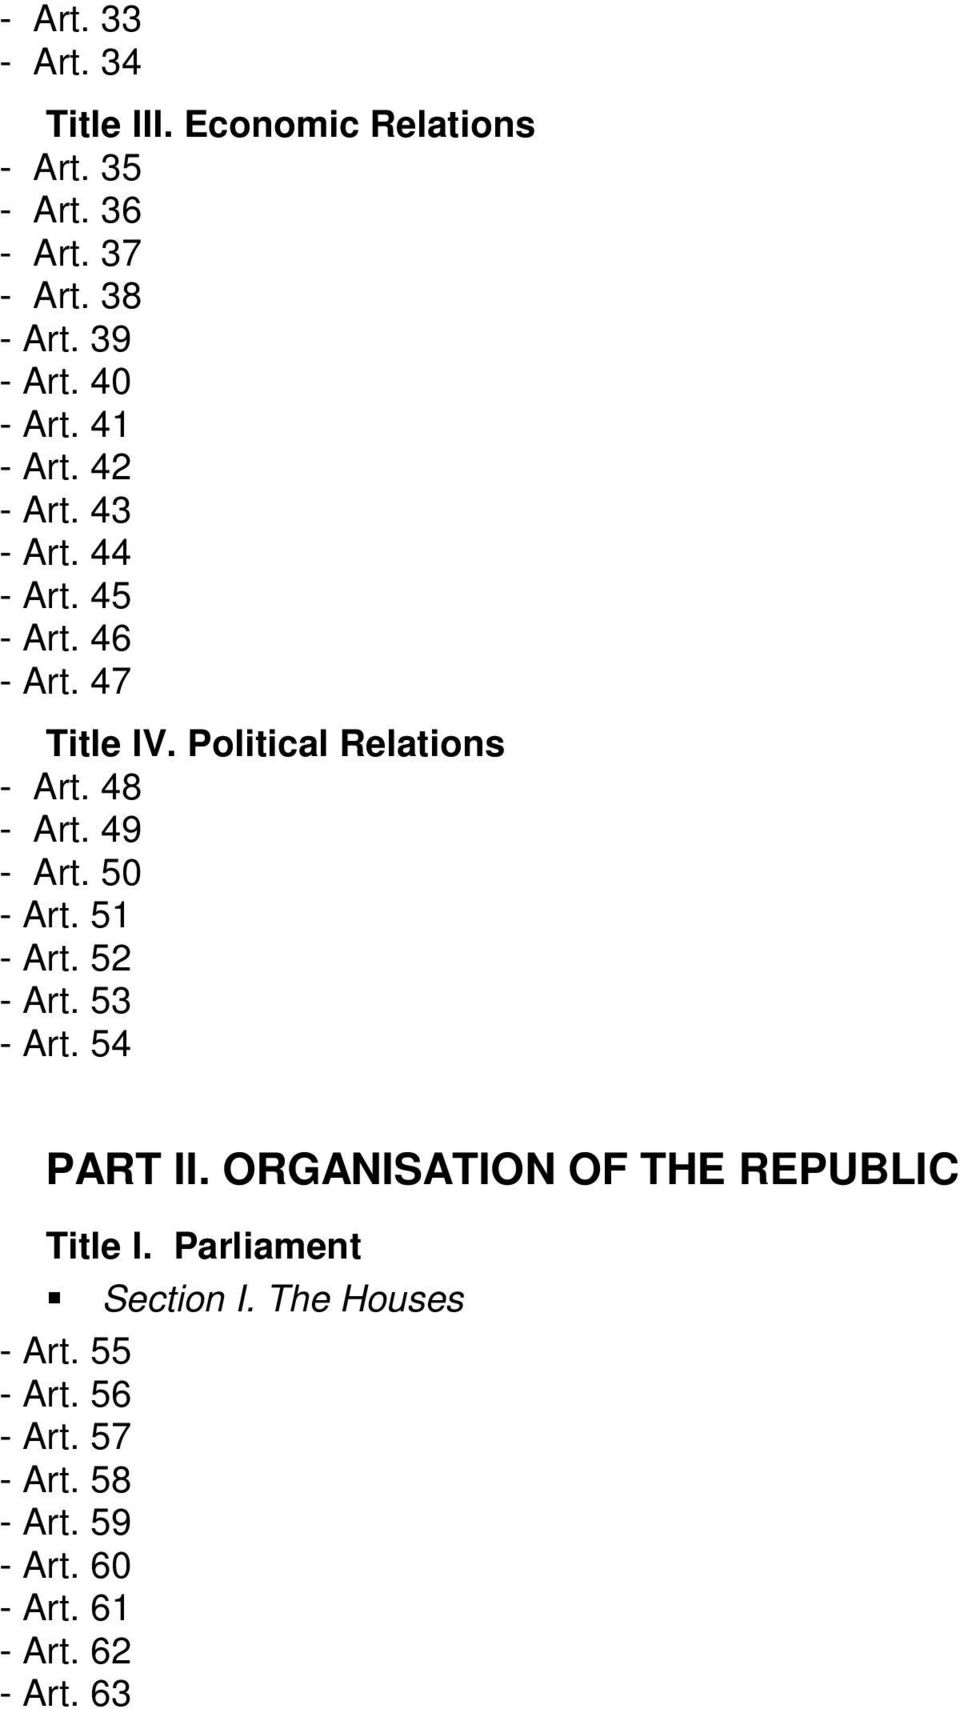 48 - Art. 49 - Art. 50 - Art. 51 - Art. 52 - Art. 53 - Art. 54 PART II. ORGANISATION OF THE REPUBLIC Title I.